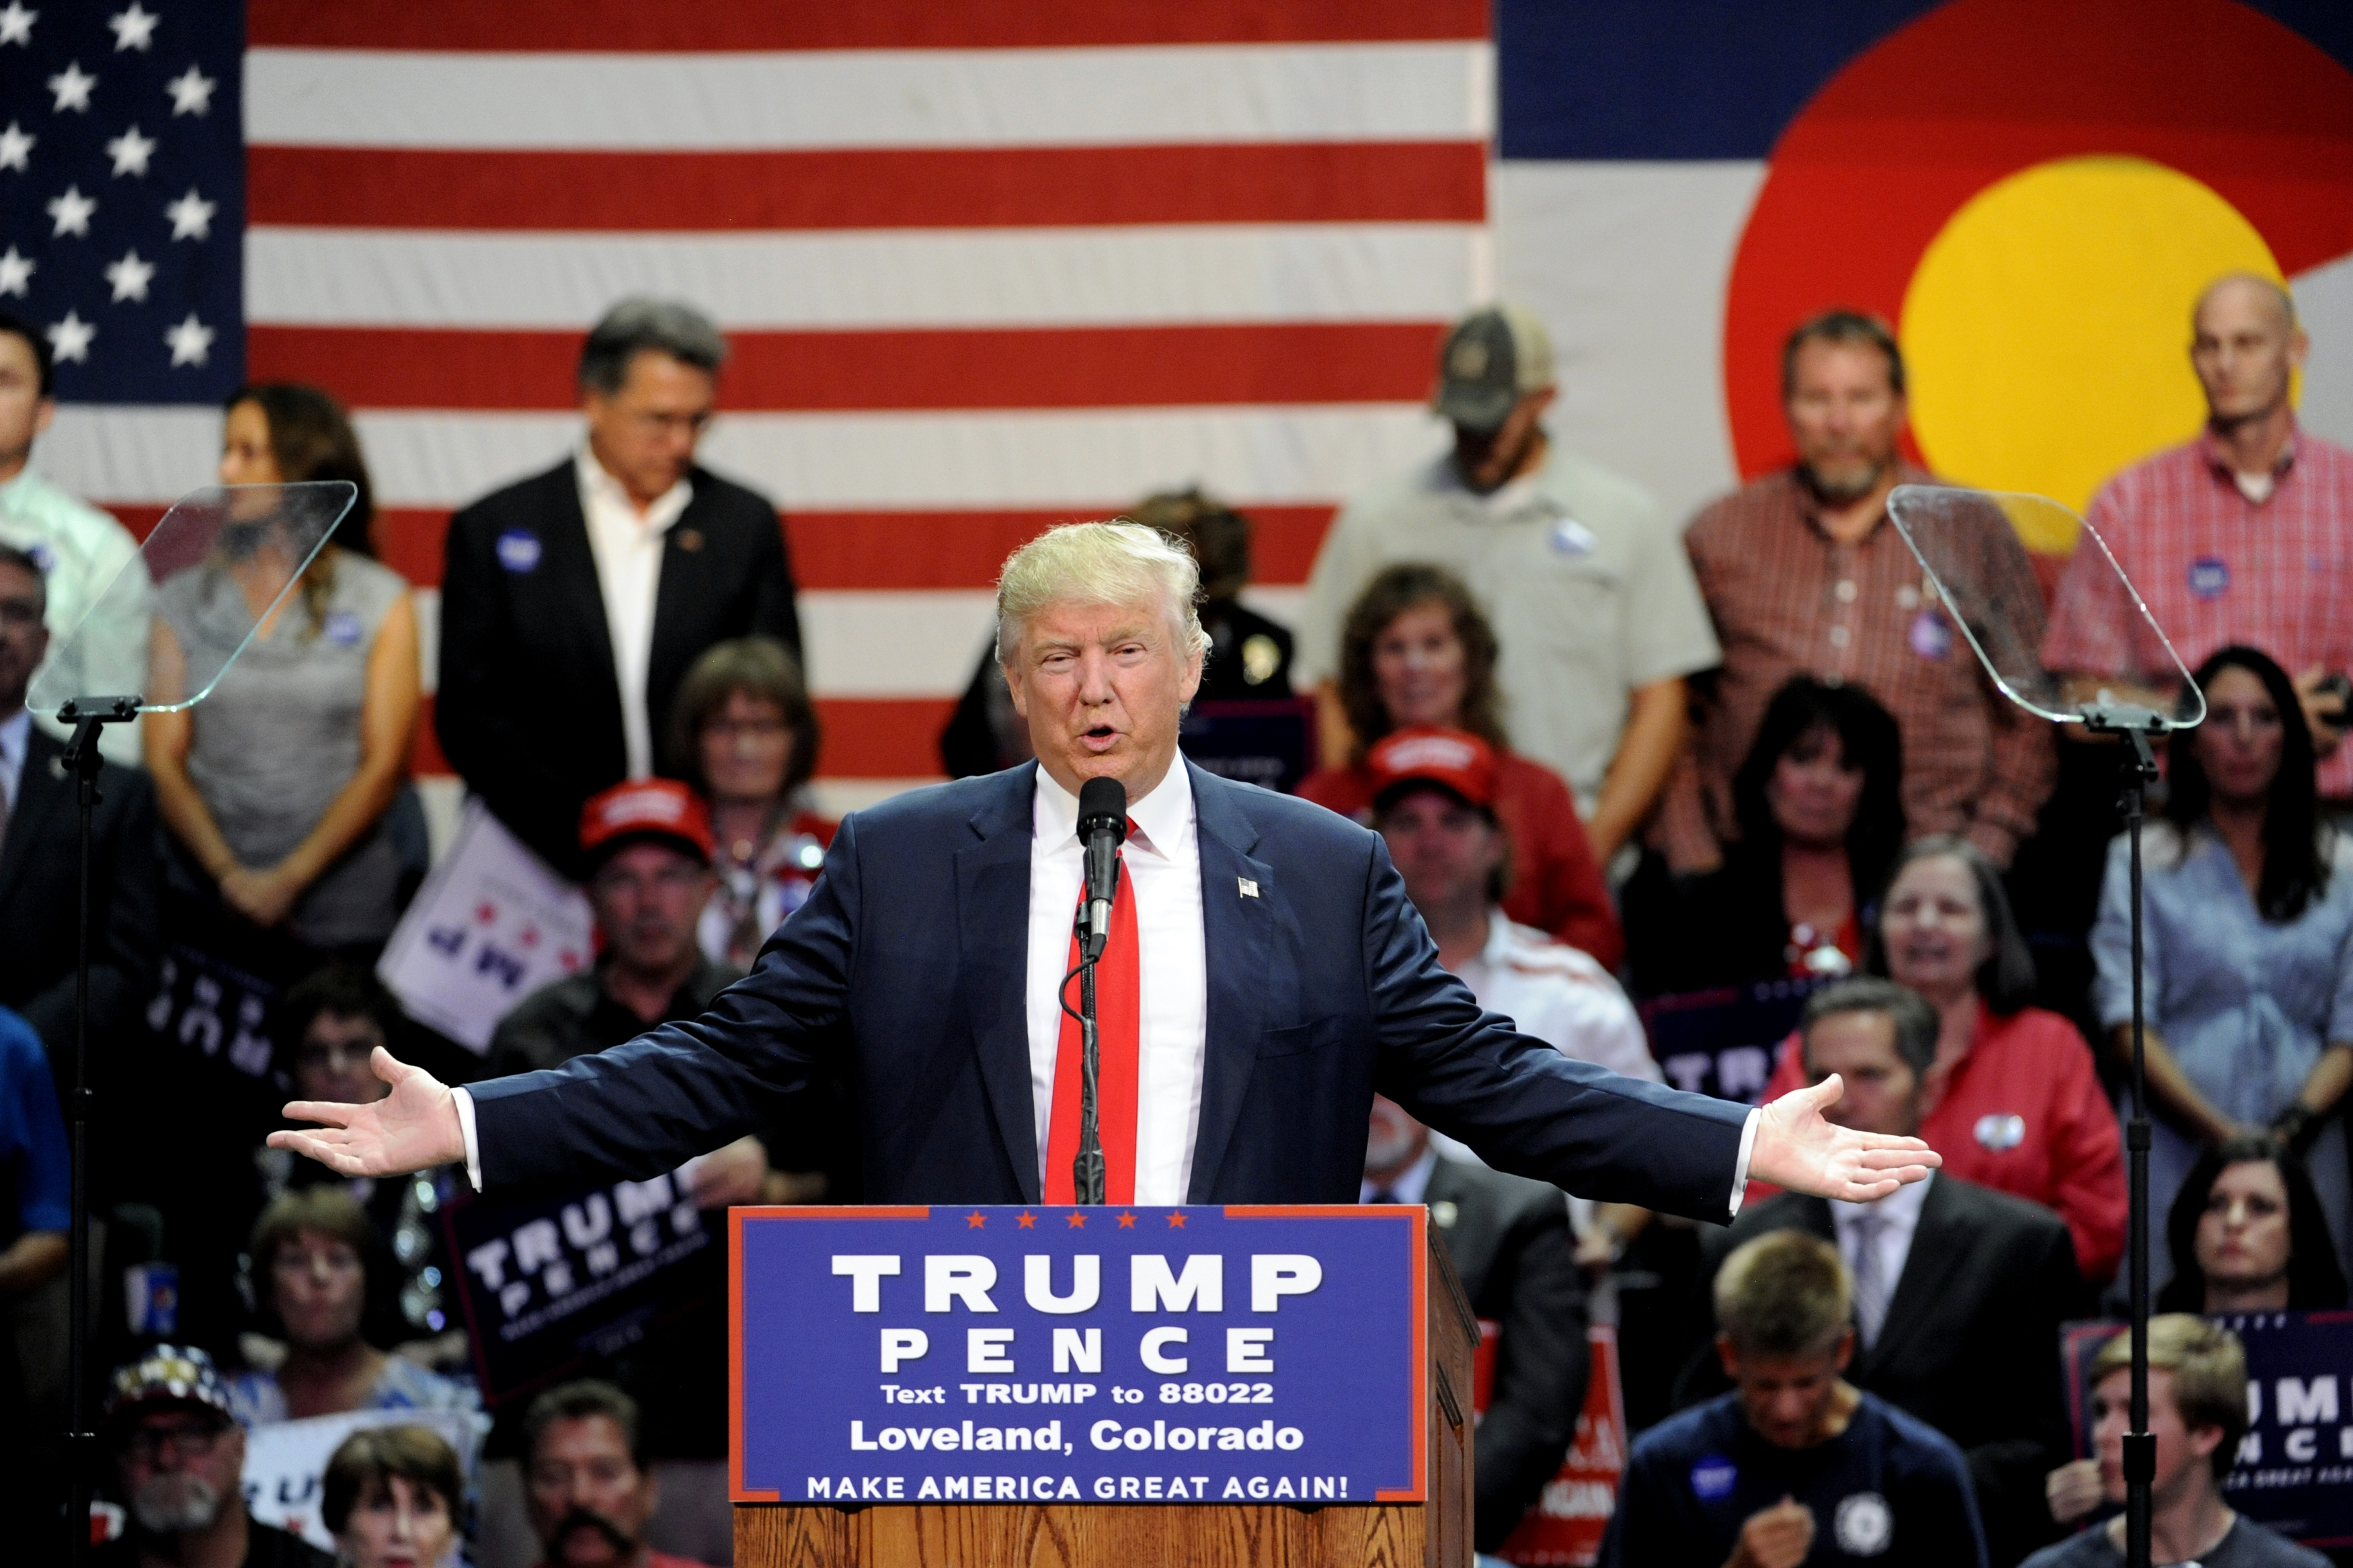 Republican presidential nominee Donald Trump addresses supporters at the Budweiser Events Center in Loveland, Colorado on October 3, 2016. (credit: JASON CONNOLLY/AFP/Getty Images)